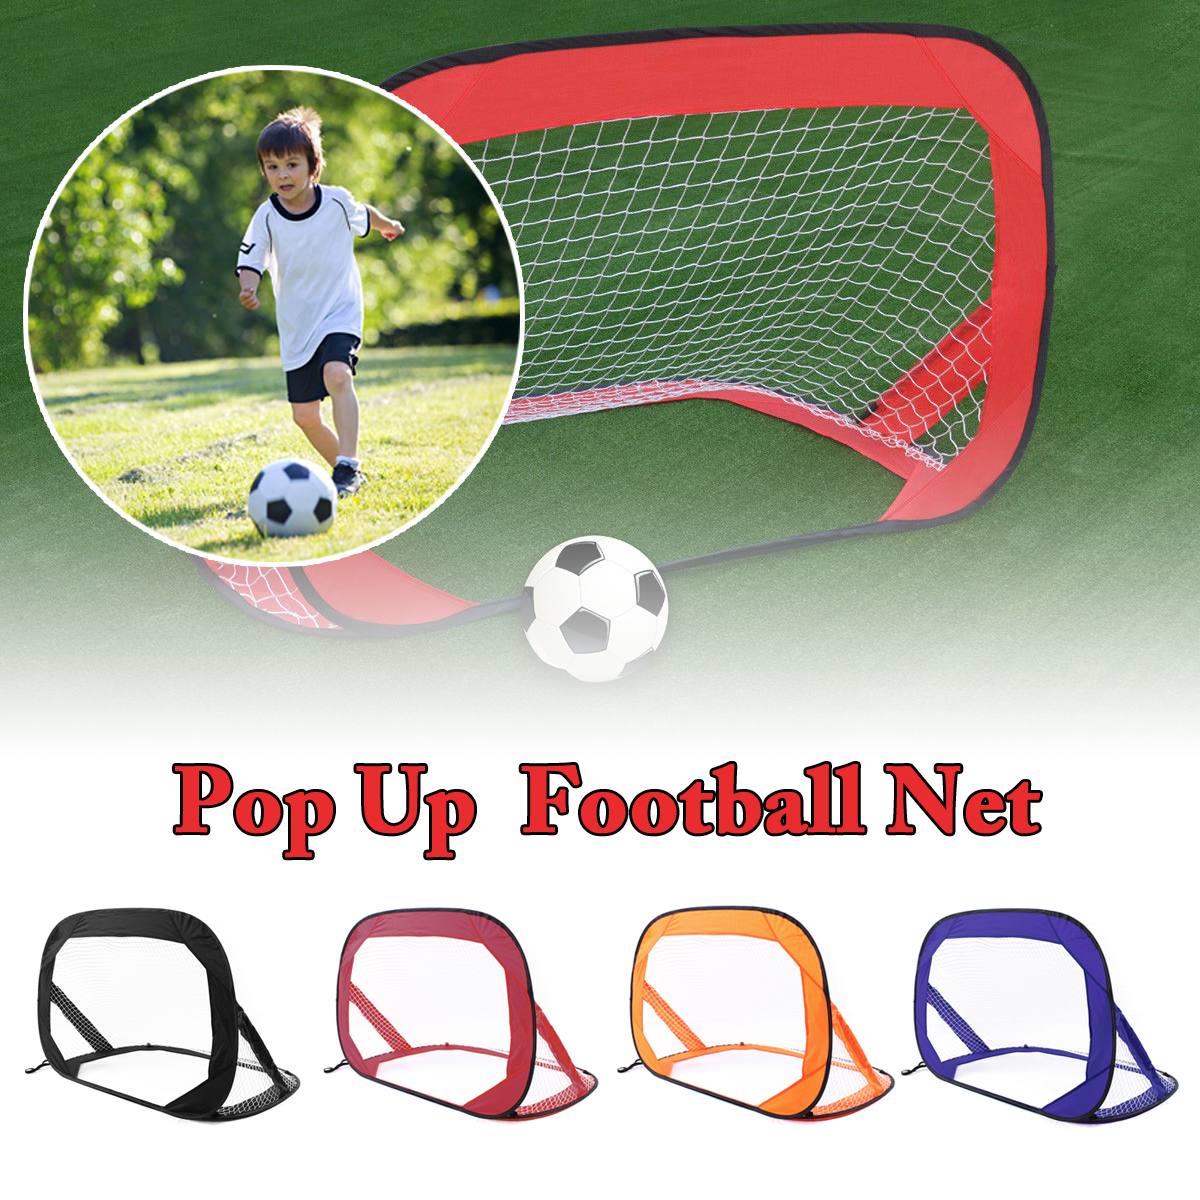 2 Pieces Folding Pop-up Soccer Goals Net Tent Outdoor Indoor Children Kids Play Sports Toy Portable Football Training Network folding soccer goal portable child pop up soccer goals for kids sports training backyard playground outdoor sports high quality